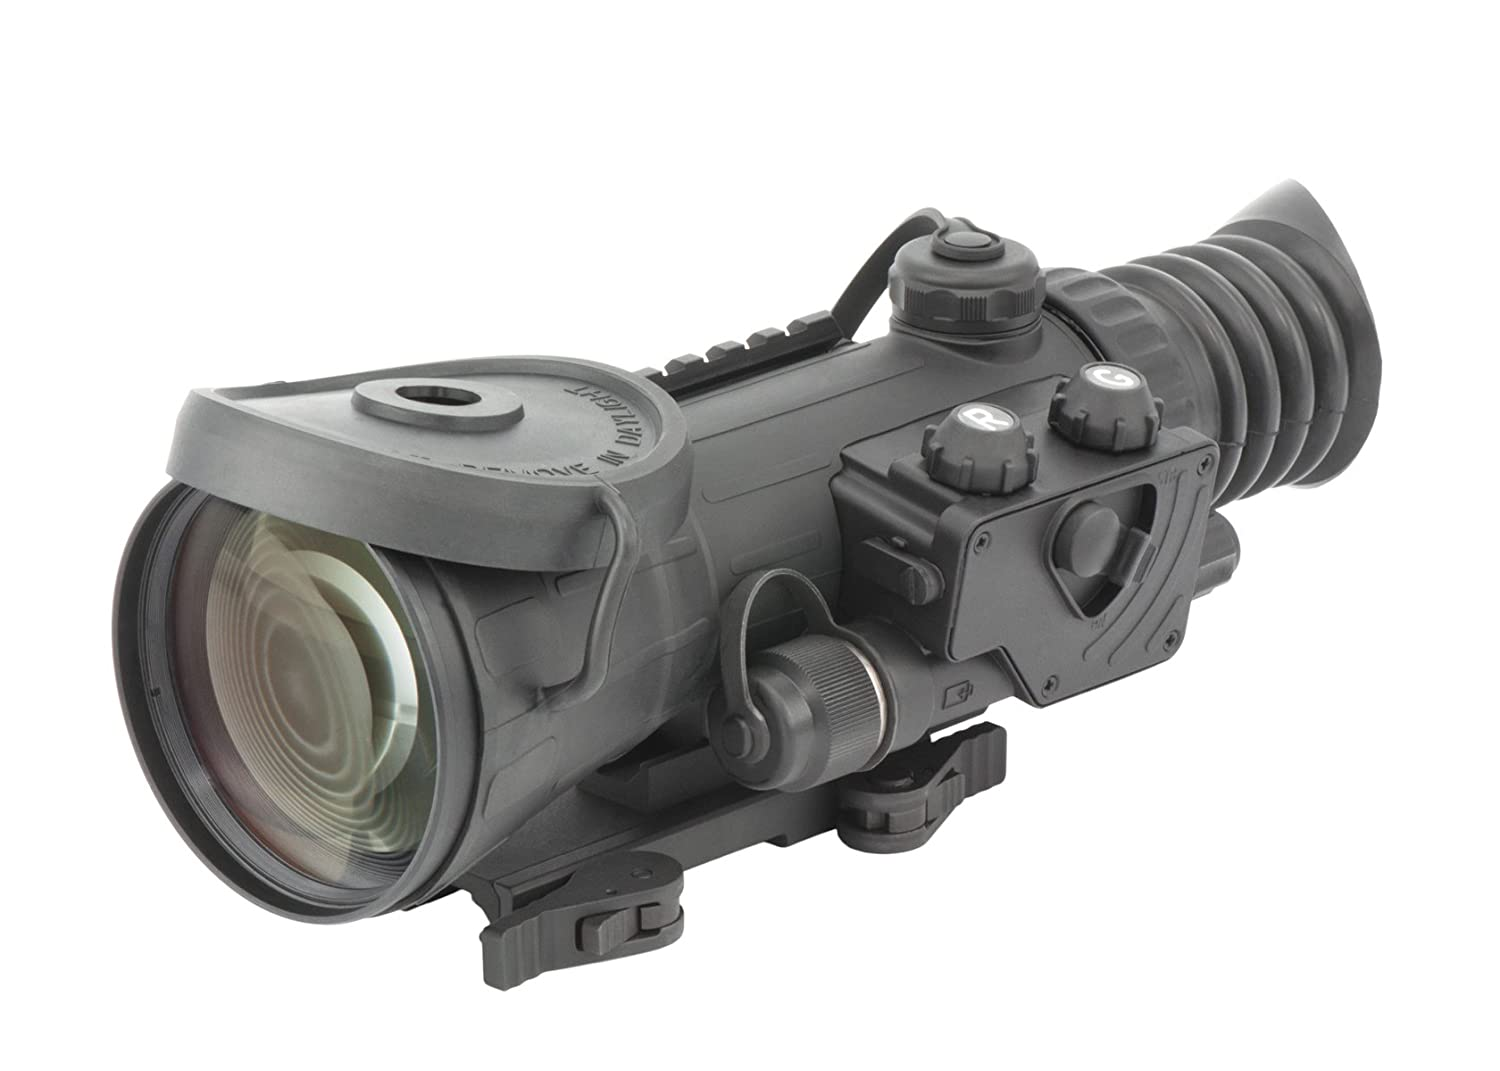 Armasight Vulcan 4.5X 3P MG - Compact Professional 4.5x Night Vision Rifle Scope Gen 3; High-Performance Thin-Filmed Auto-Gated IIT with Manual Gain and IR850-XLR Extra Long-Range Infrared Illuminator